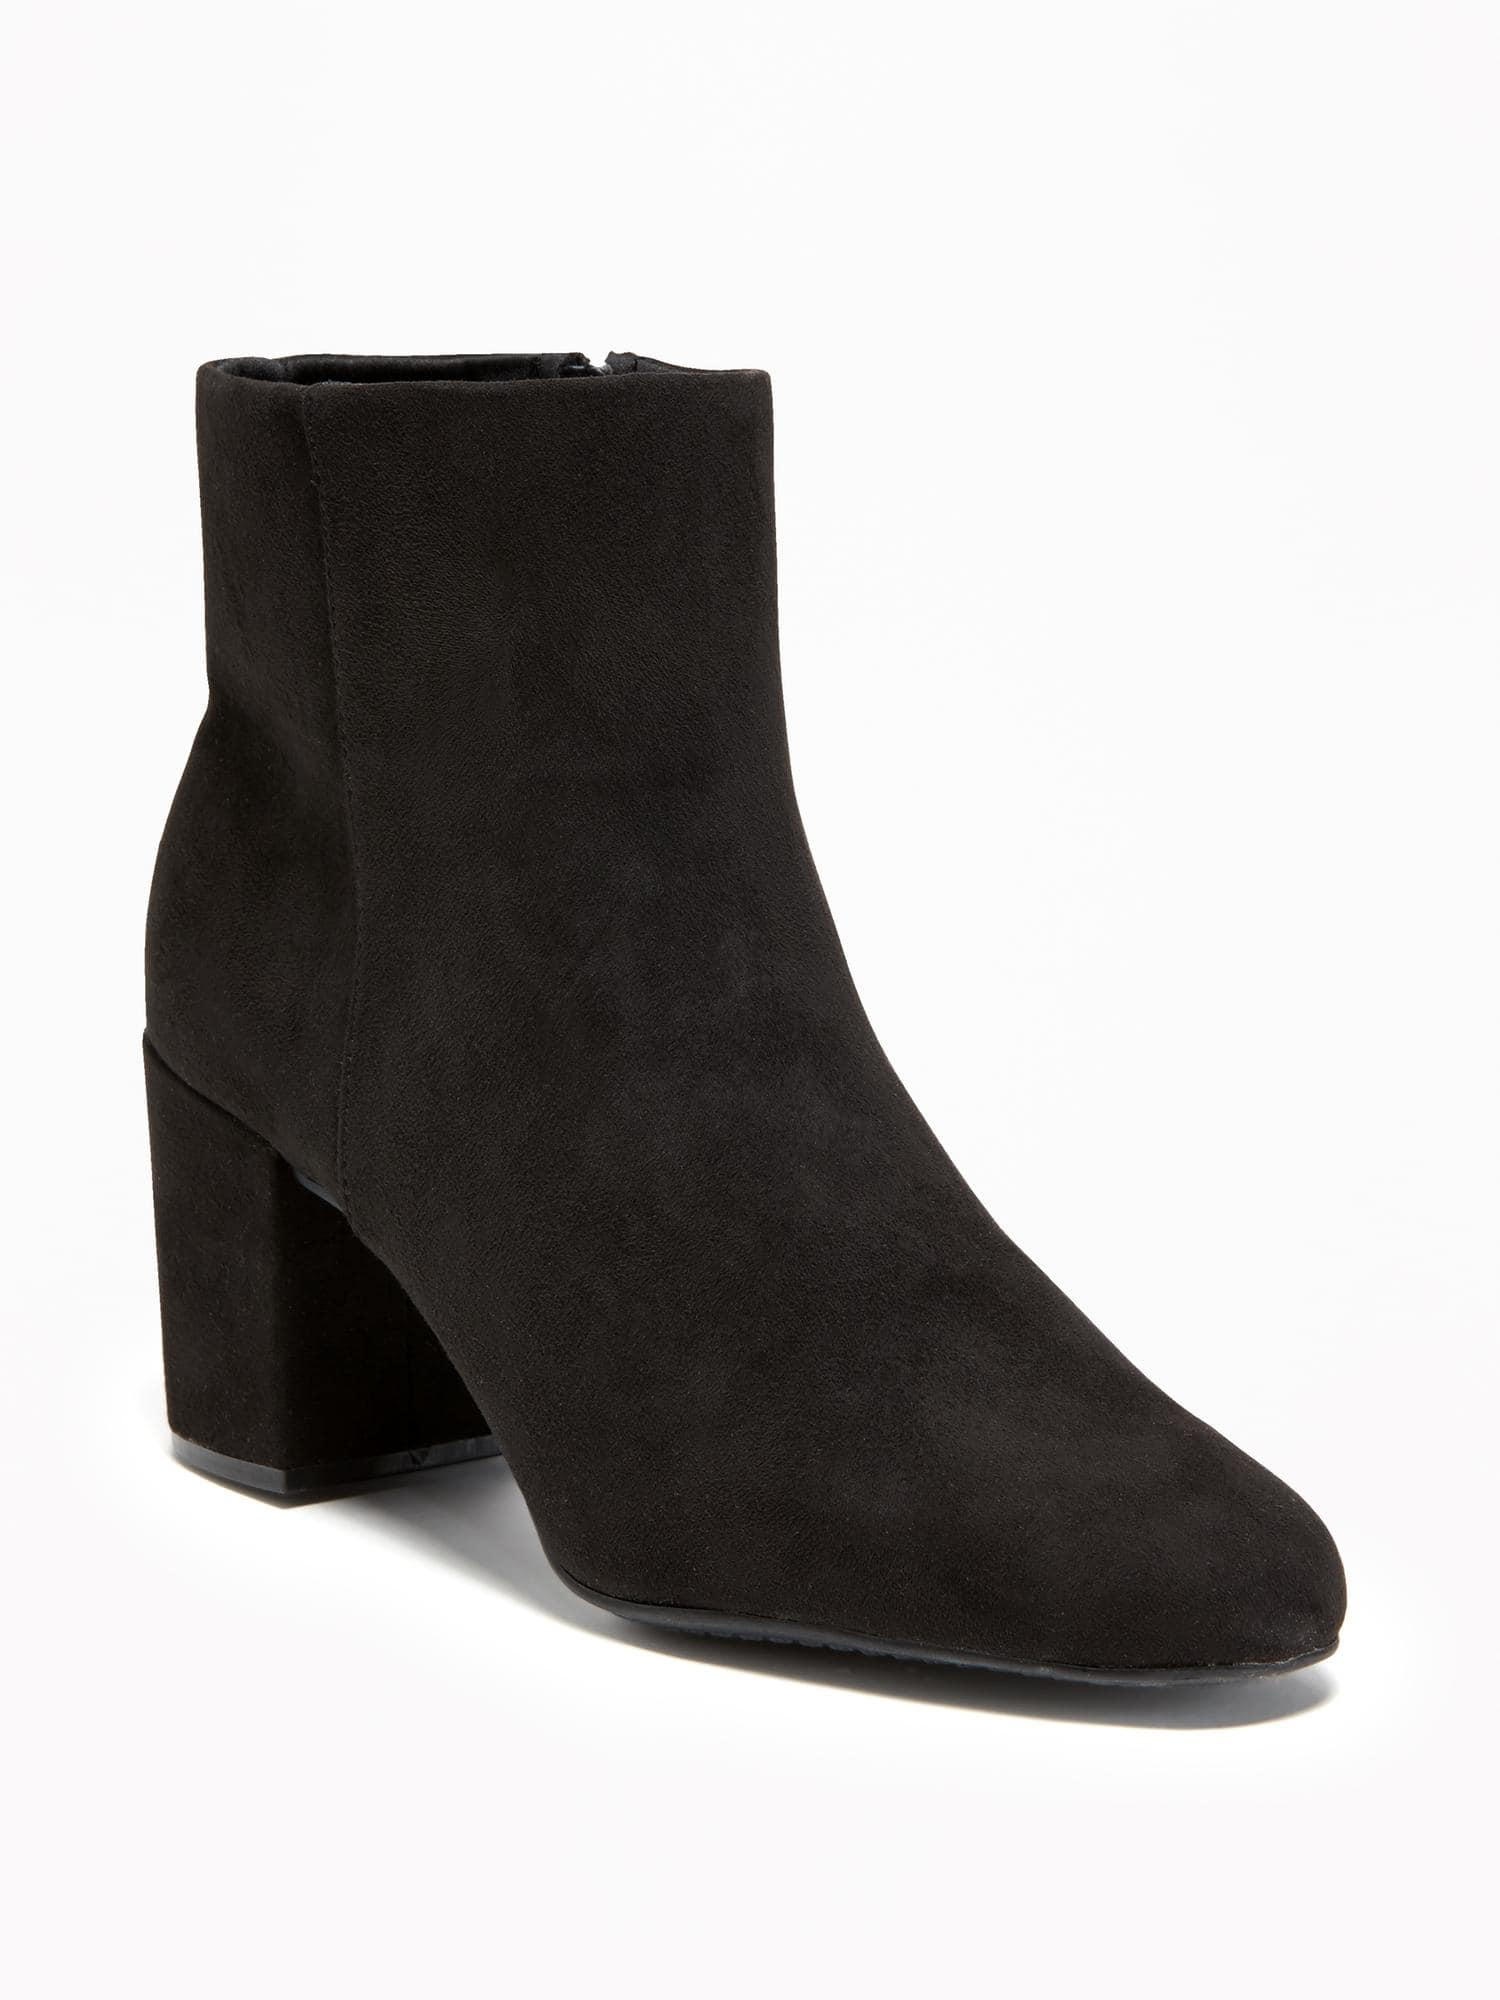 factory authentic buy best store Old Navy + Suede Ankle Boots For Women